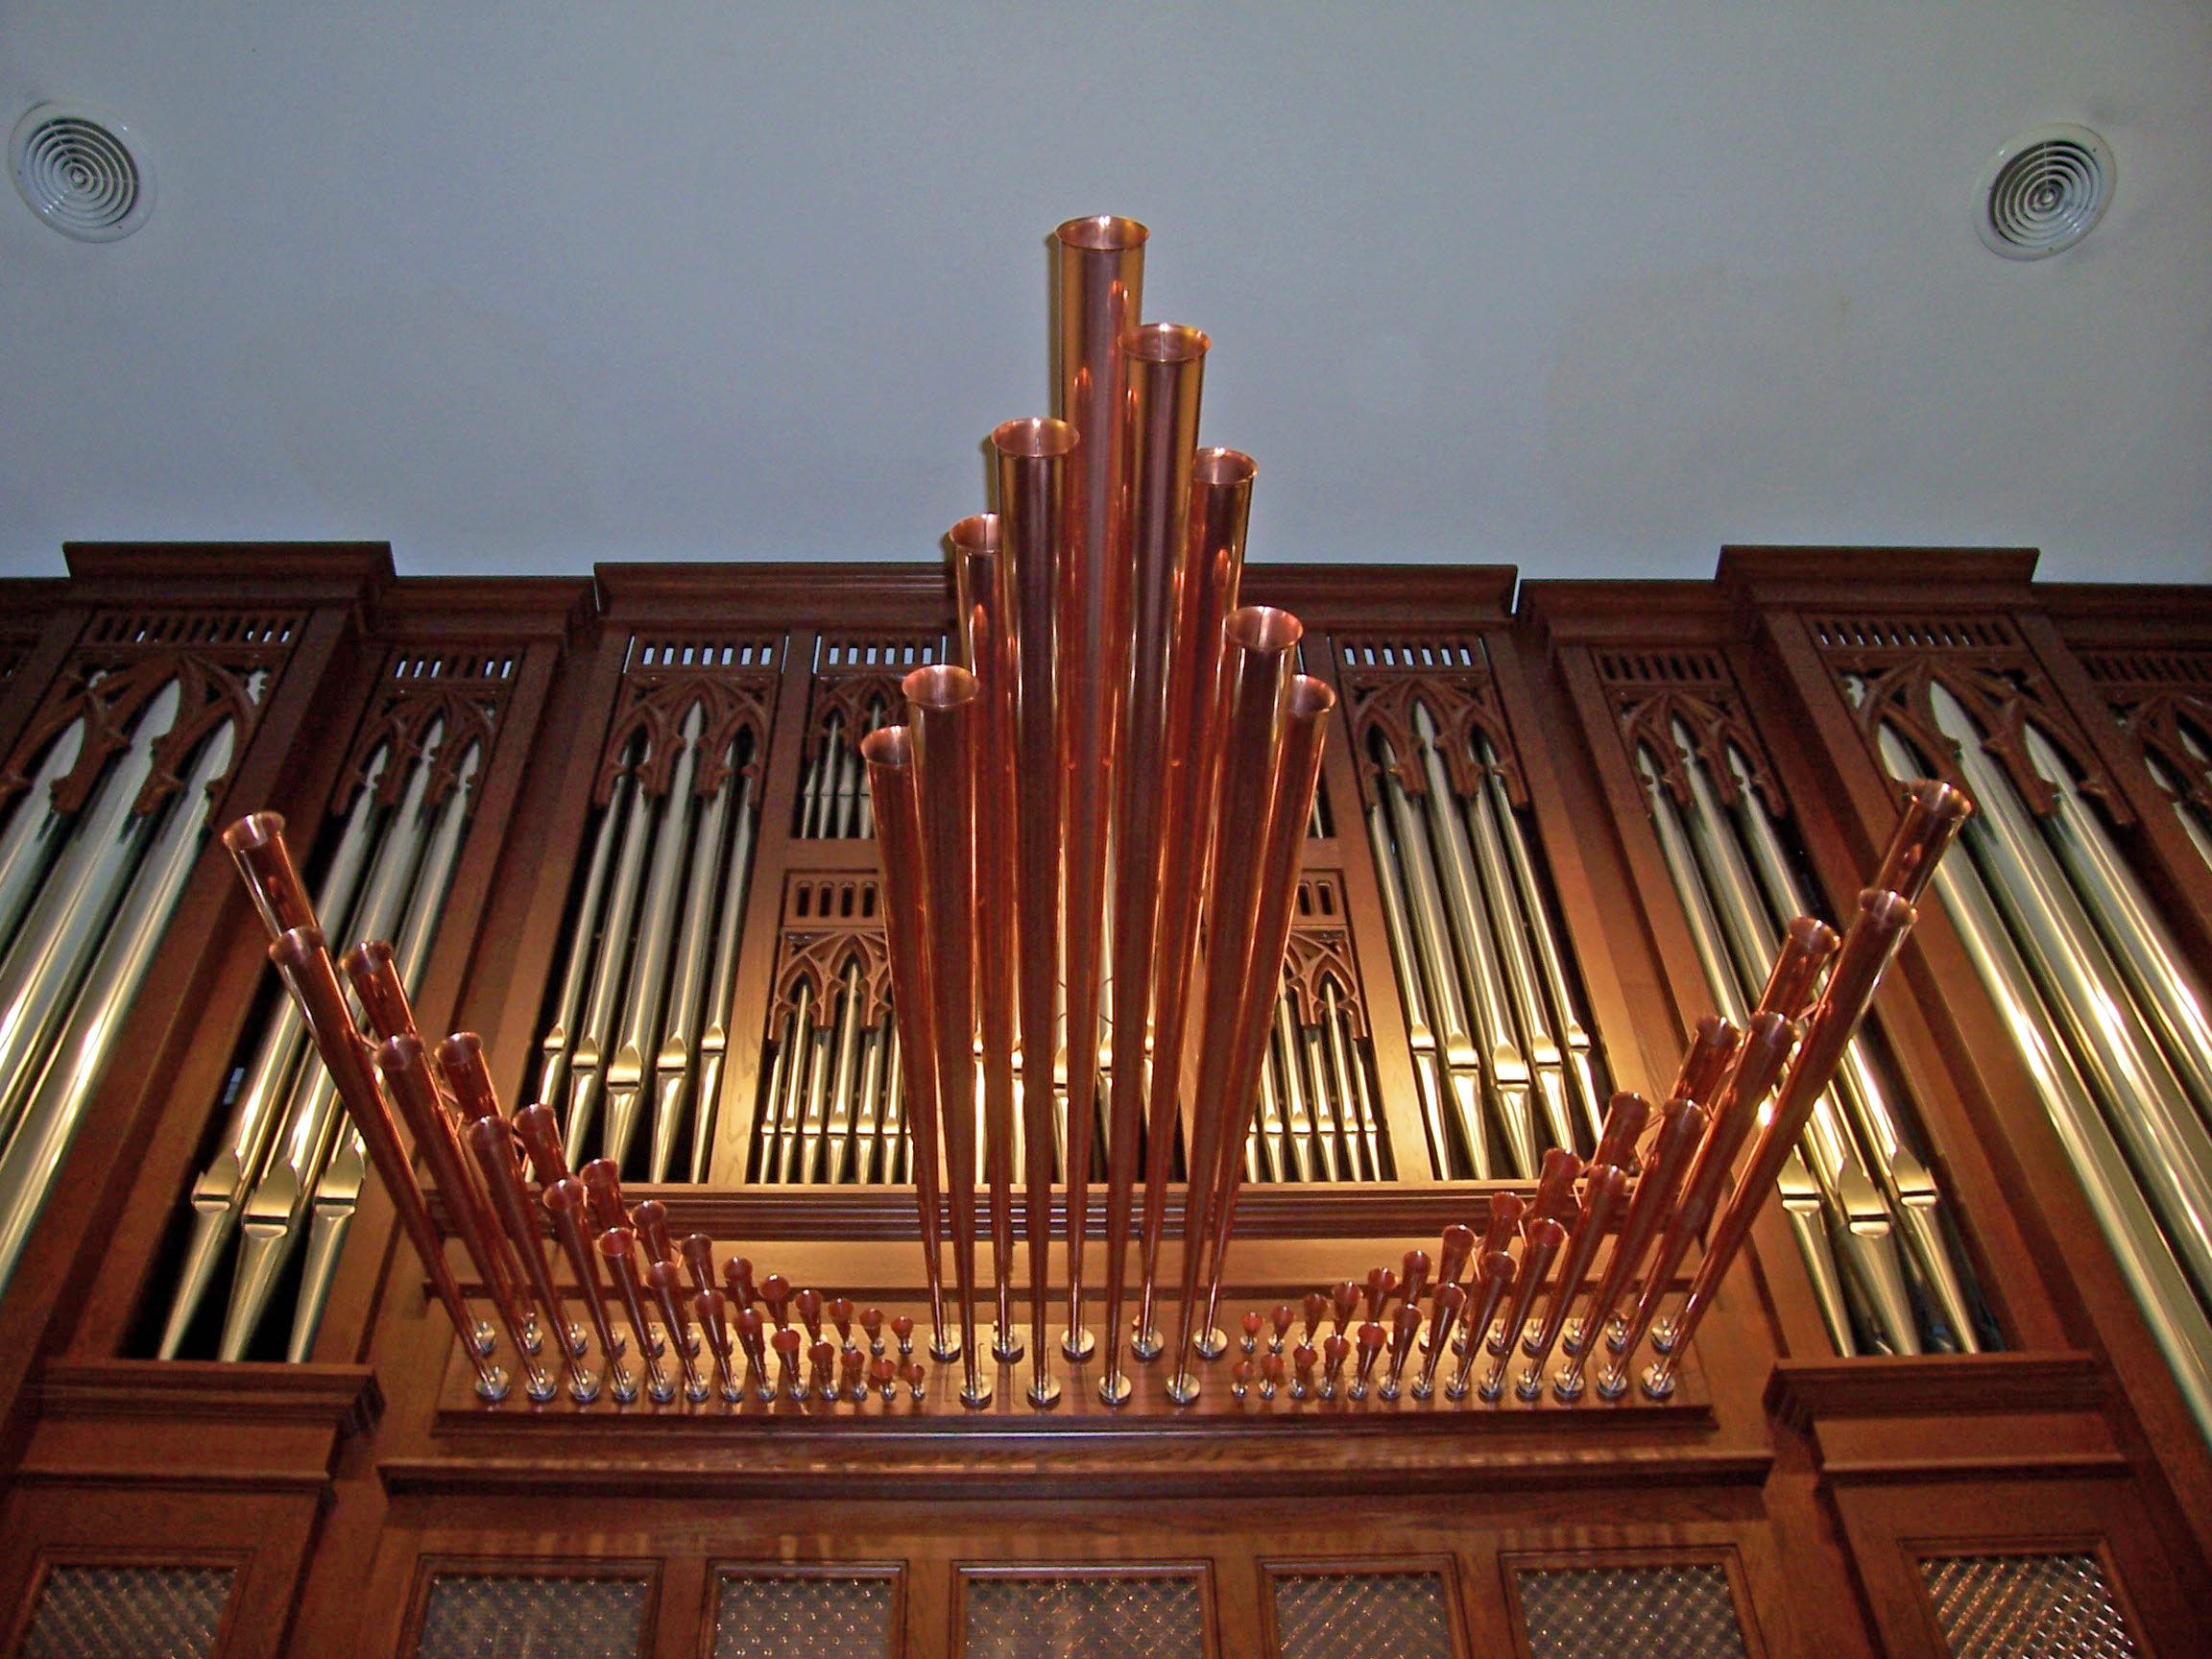 Trompette-en-chamade pipes of the Casavant organ